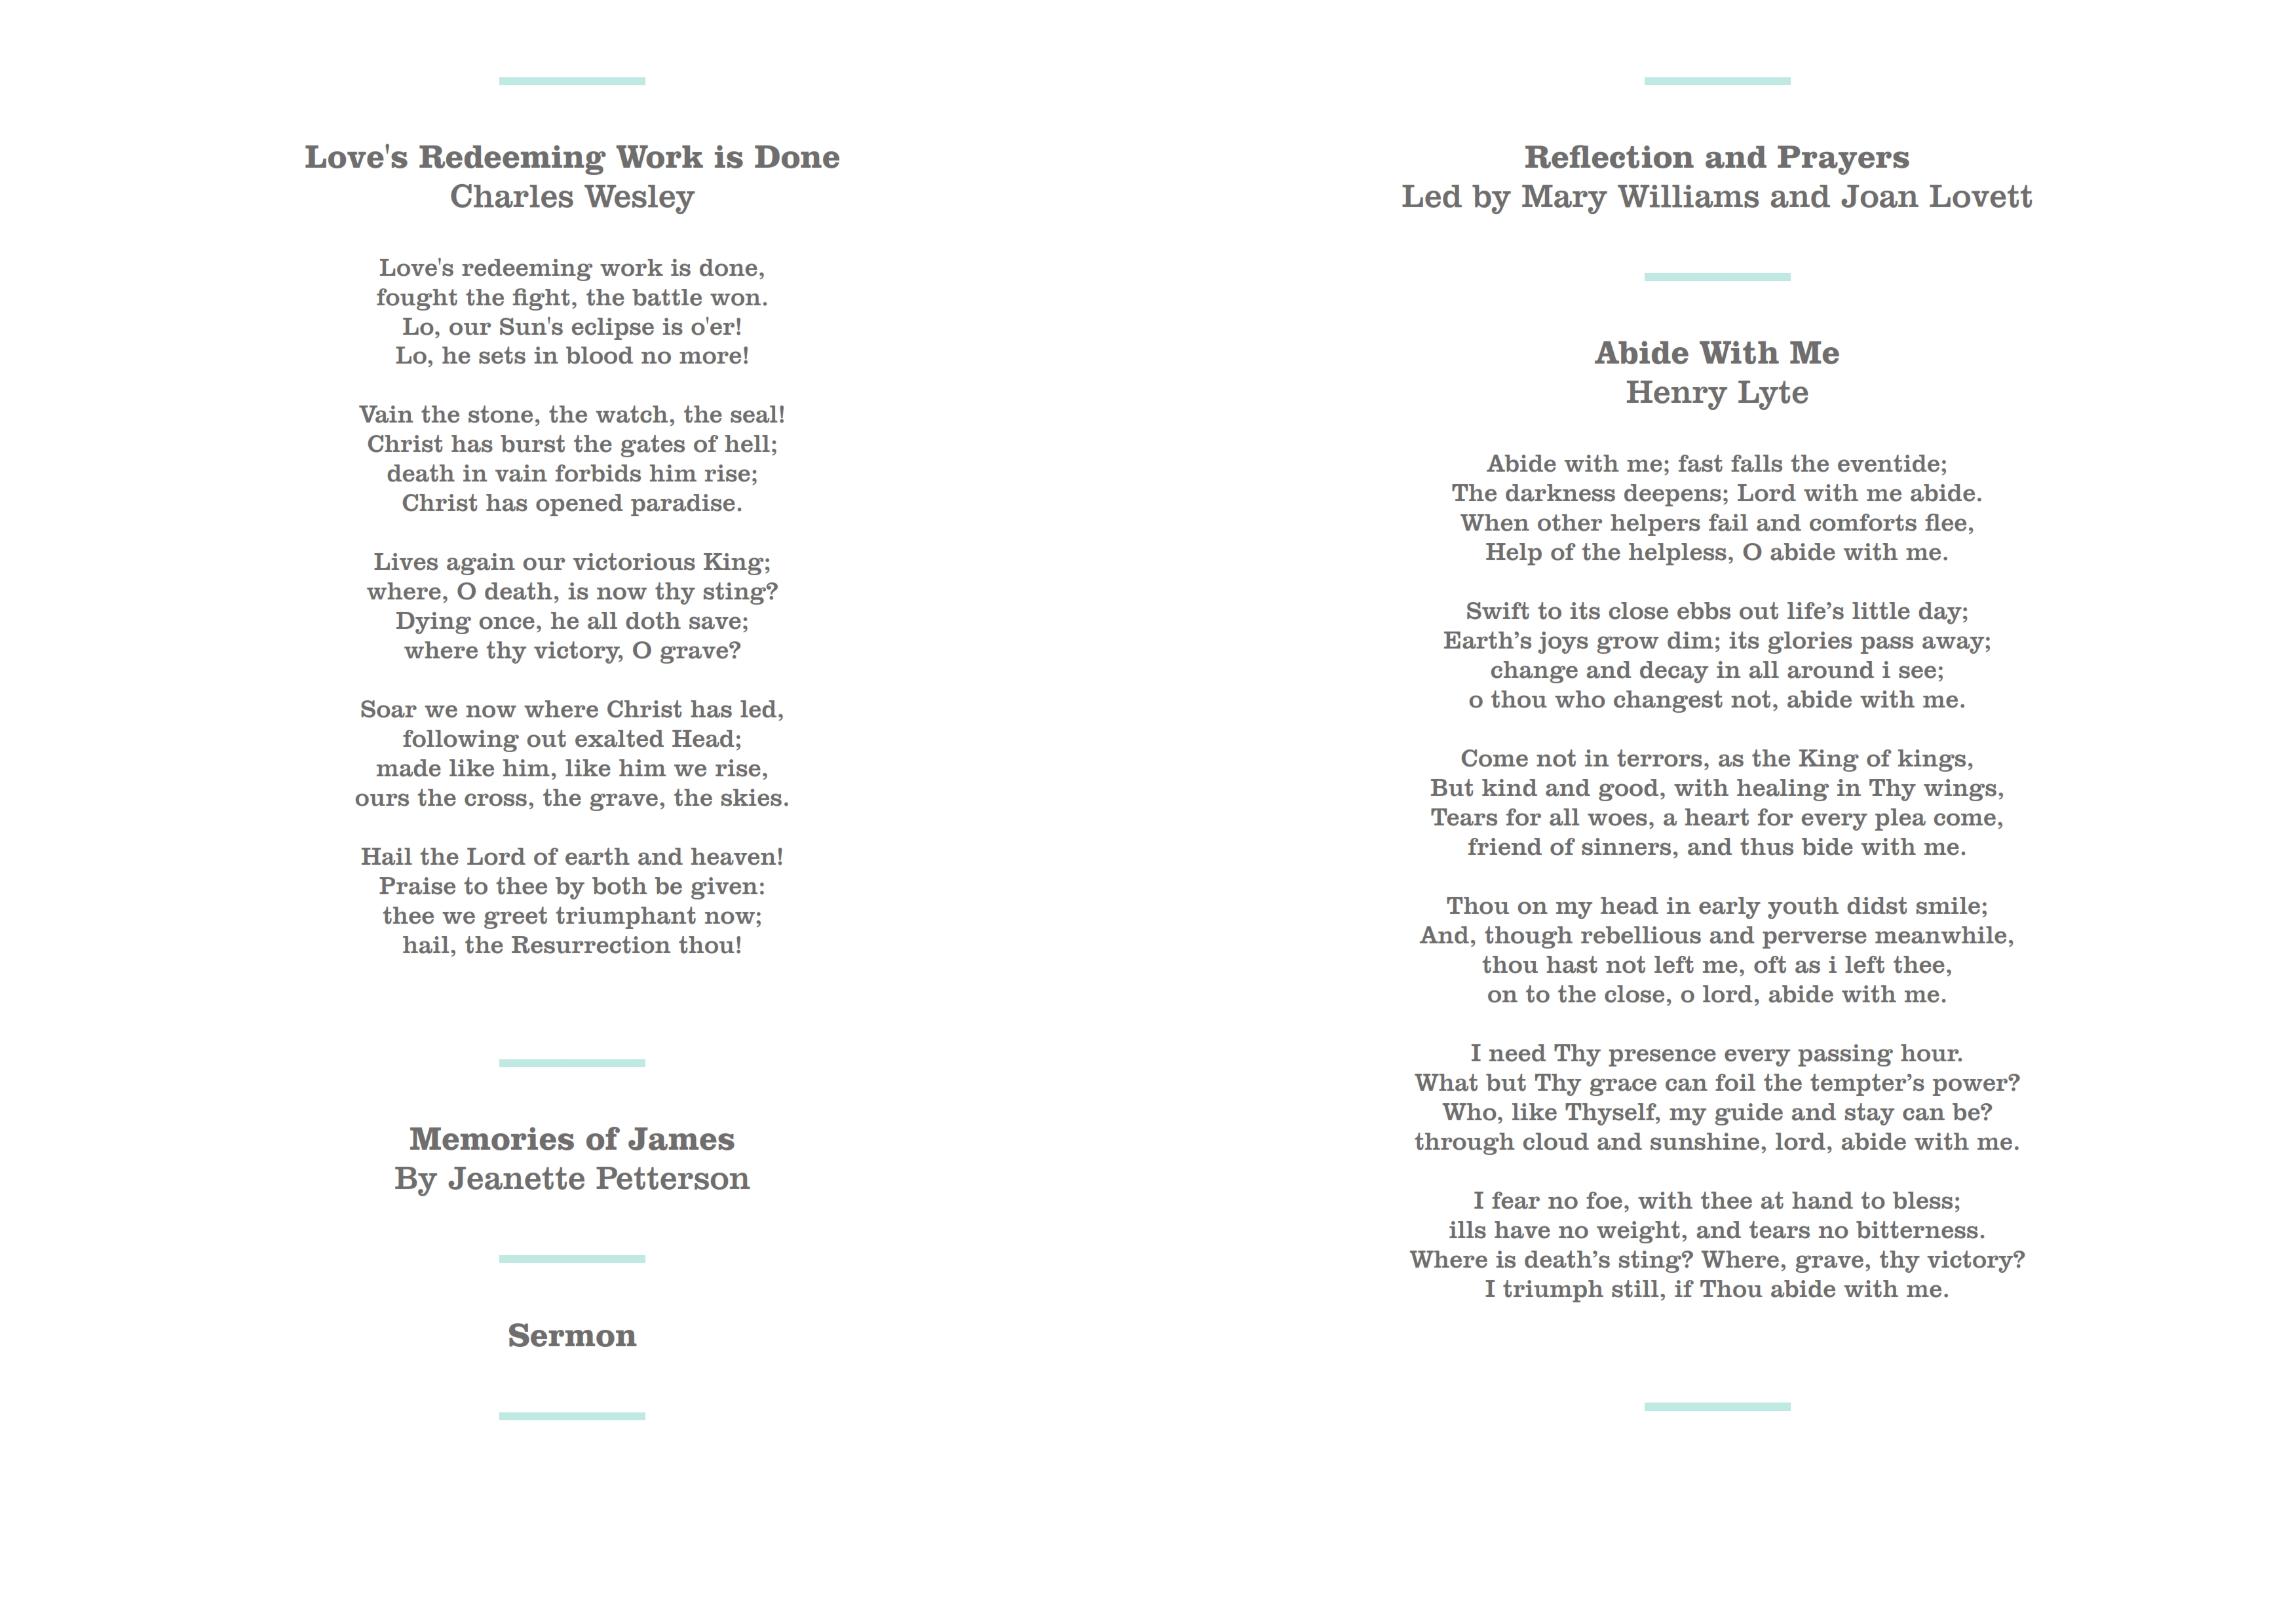 Funeral Stationery With Grace 2 Funeralstationery Death Announcement Cards  Free Lined Death Announcement Cards Free Lined  Death Announcement Cards Free